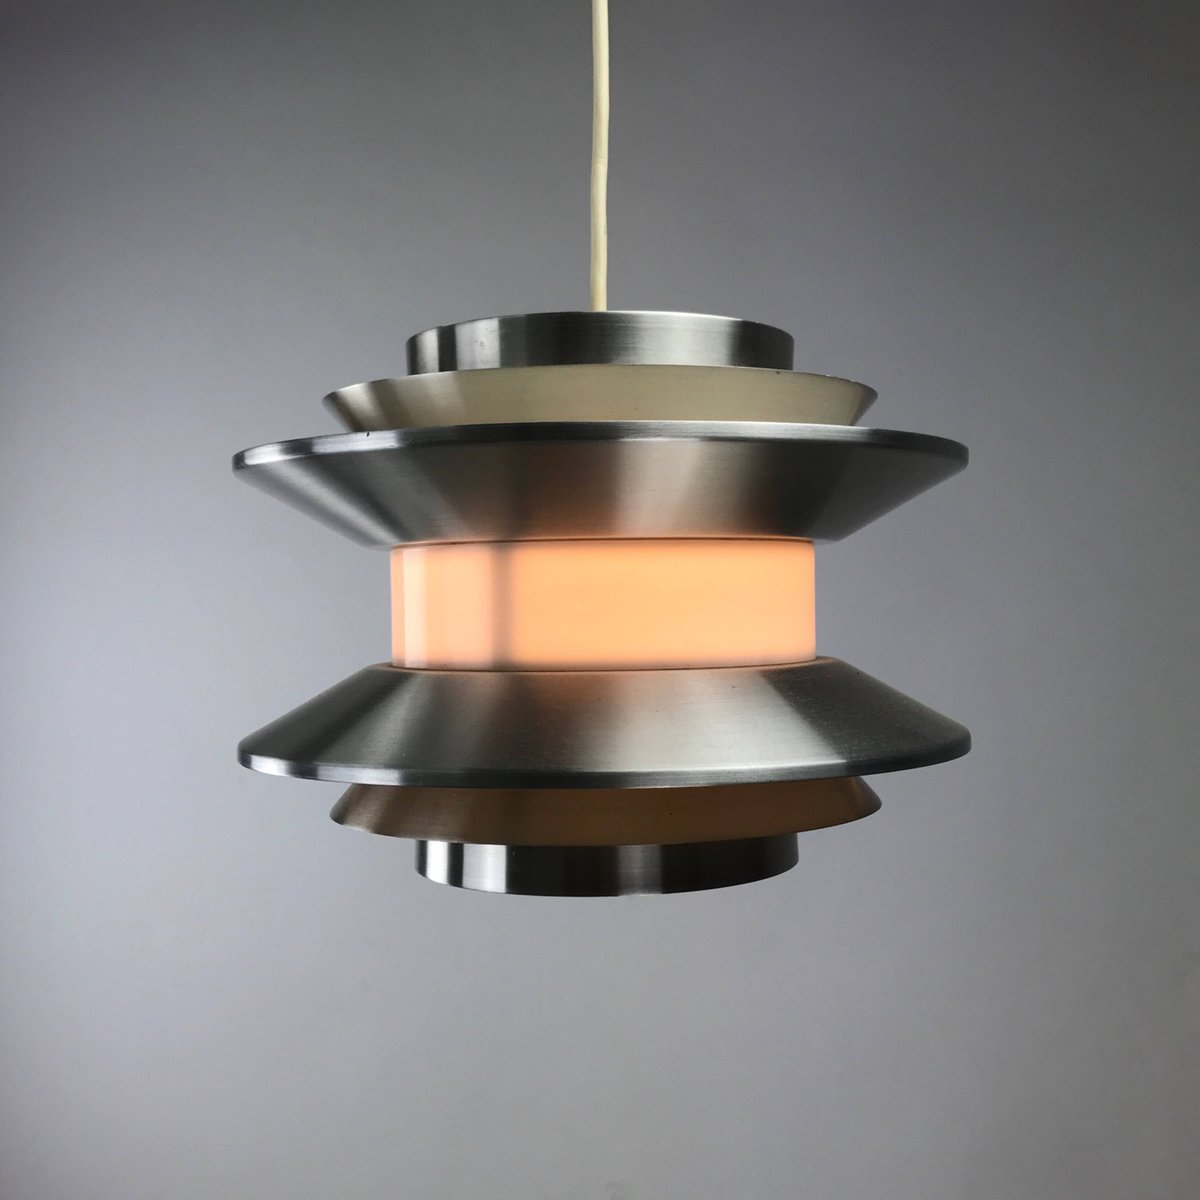 Mid Century Modern Ceiling Light By Carl Thore For Granhaga Metal